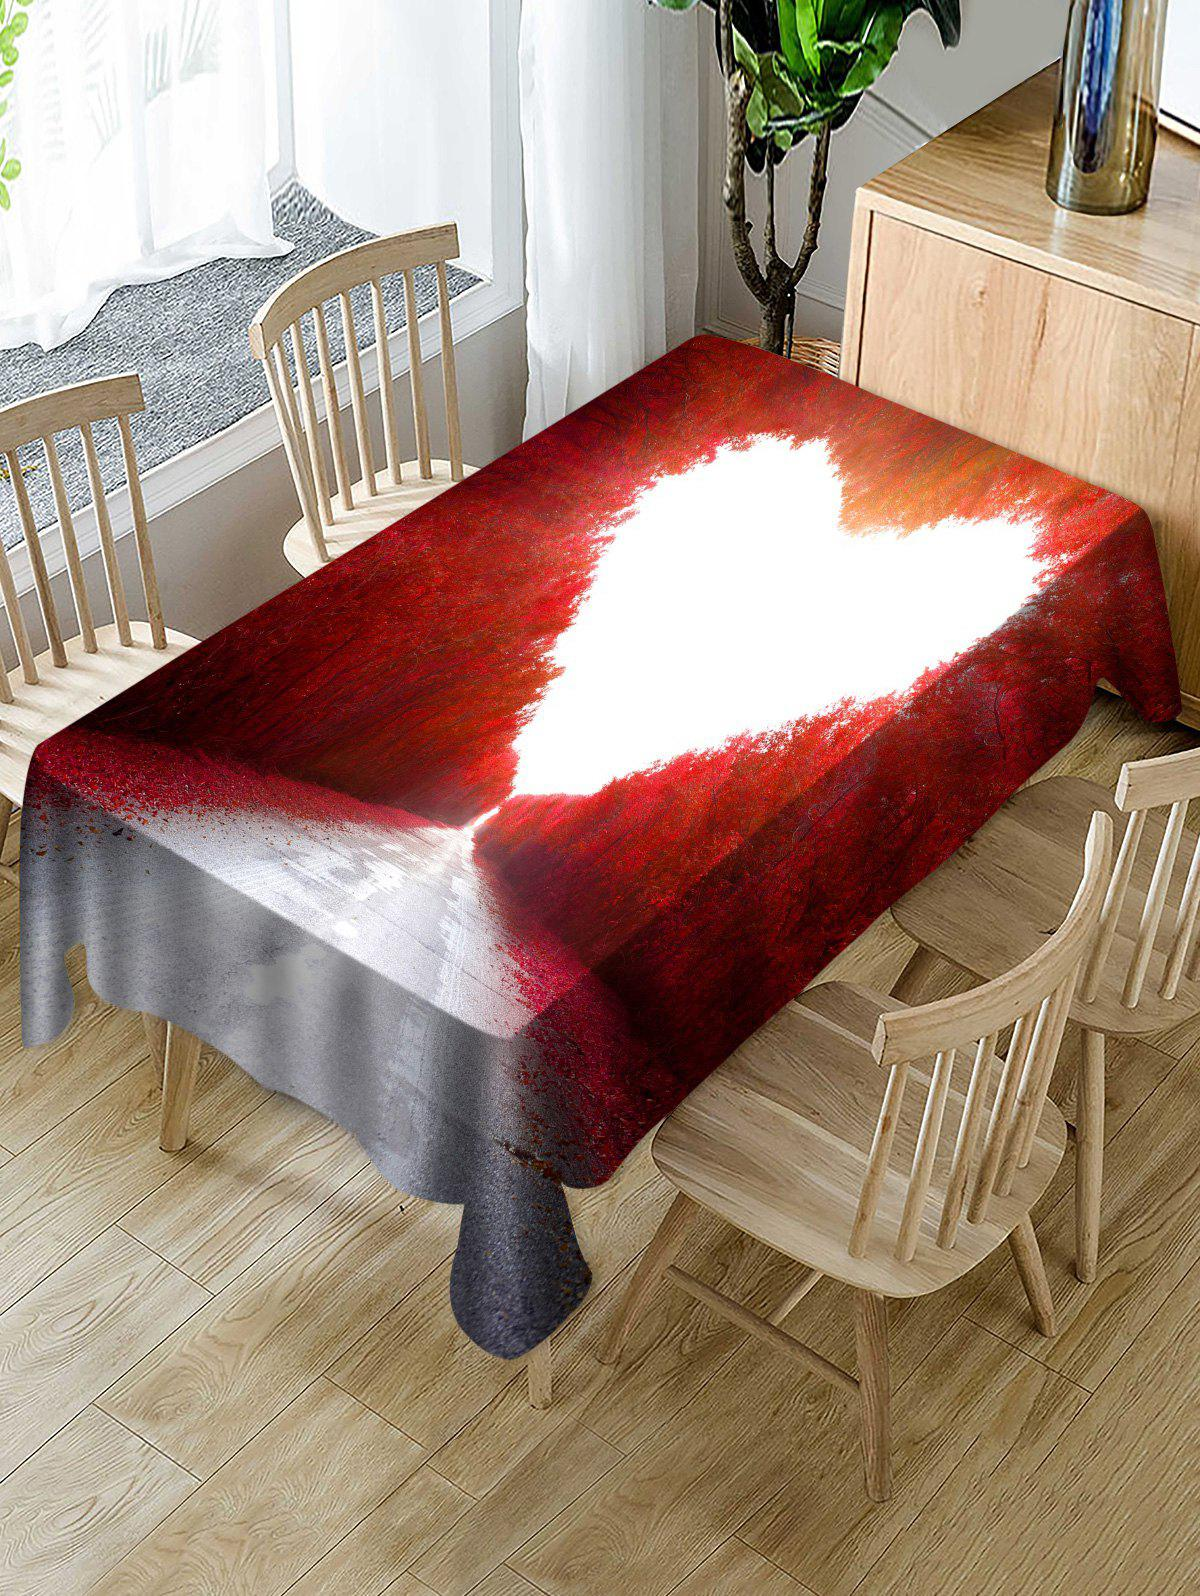 New Maple Forest Heart Print Fabric Waterproof Tablecloth